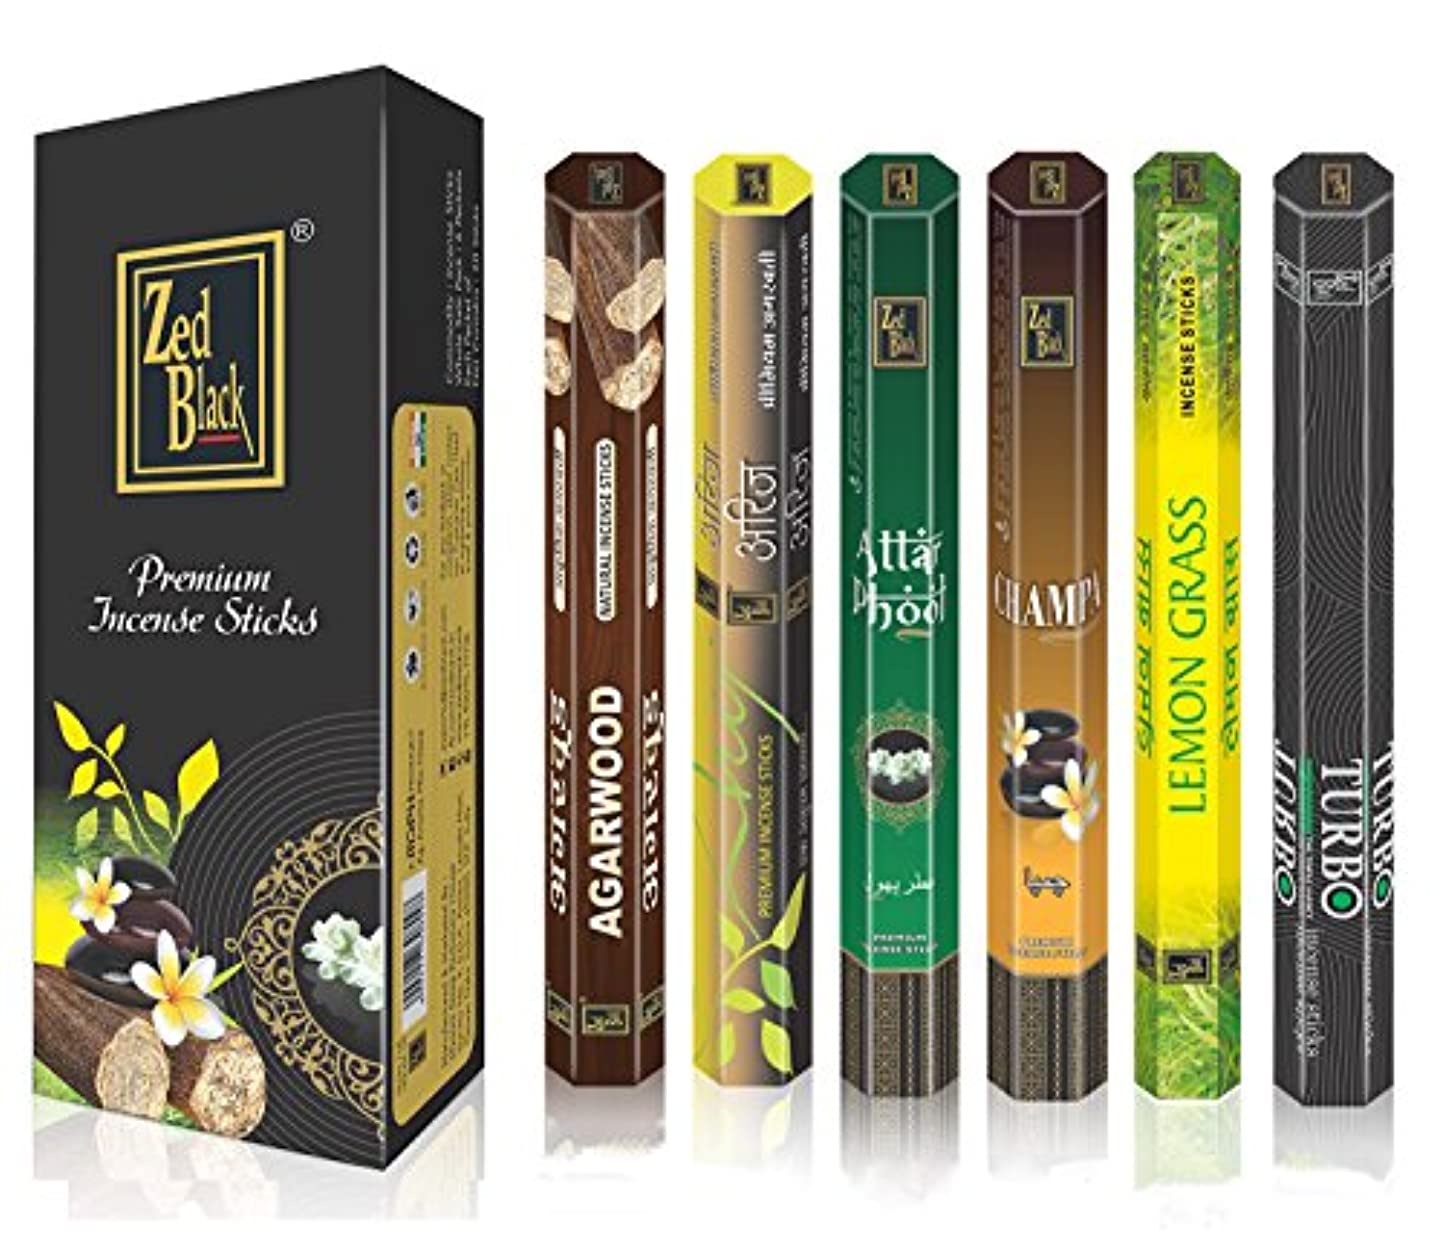 カウント麦芽レジAromaプレミアムFragrance Sticks – パックof 6 – Serene and Enthralling 120 Incense Sticks – Feel The natural fragrances...